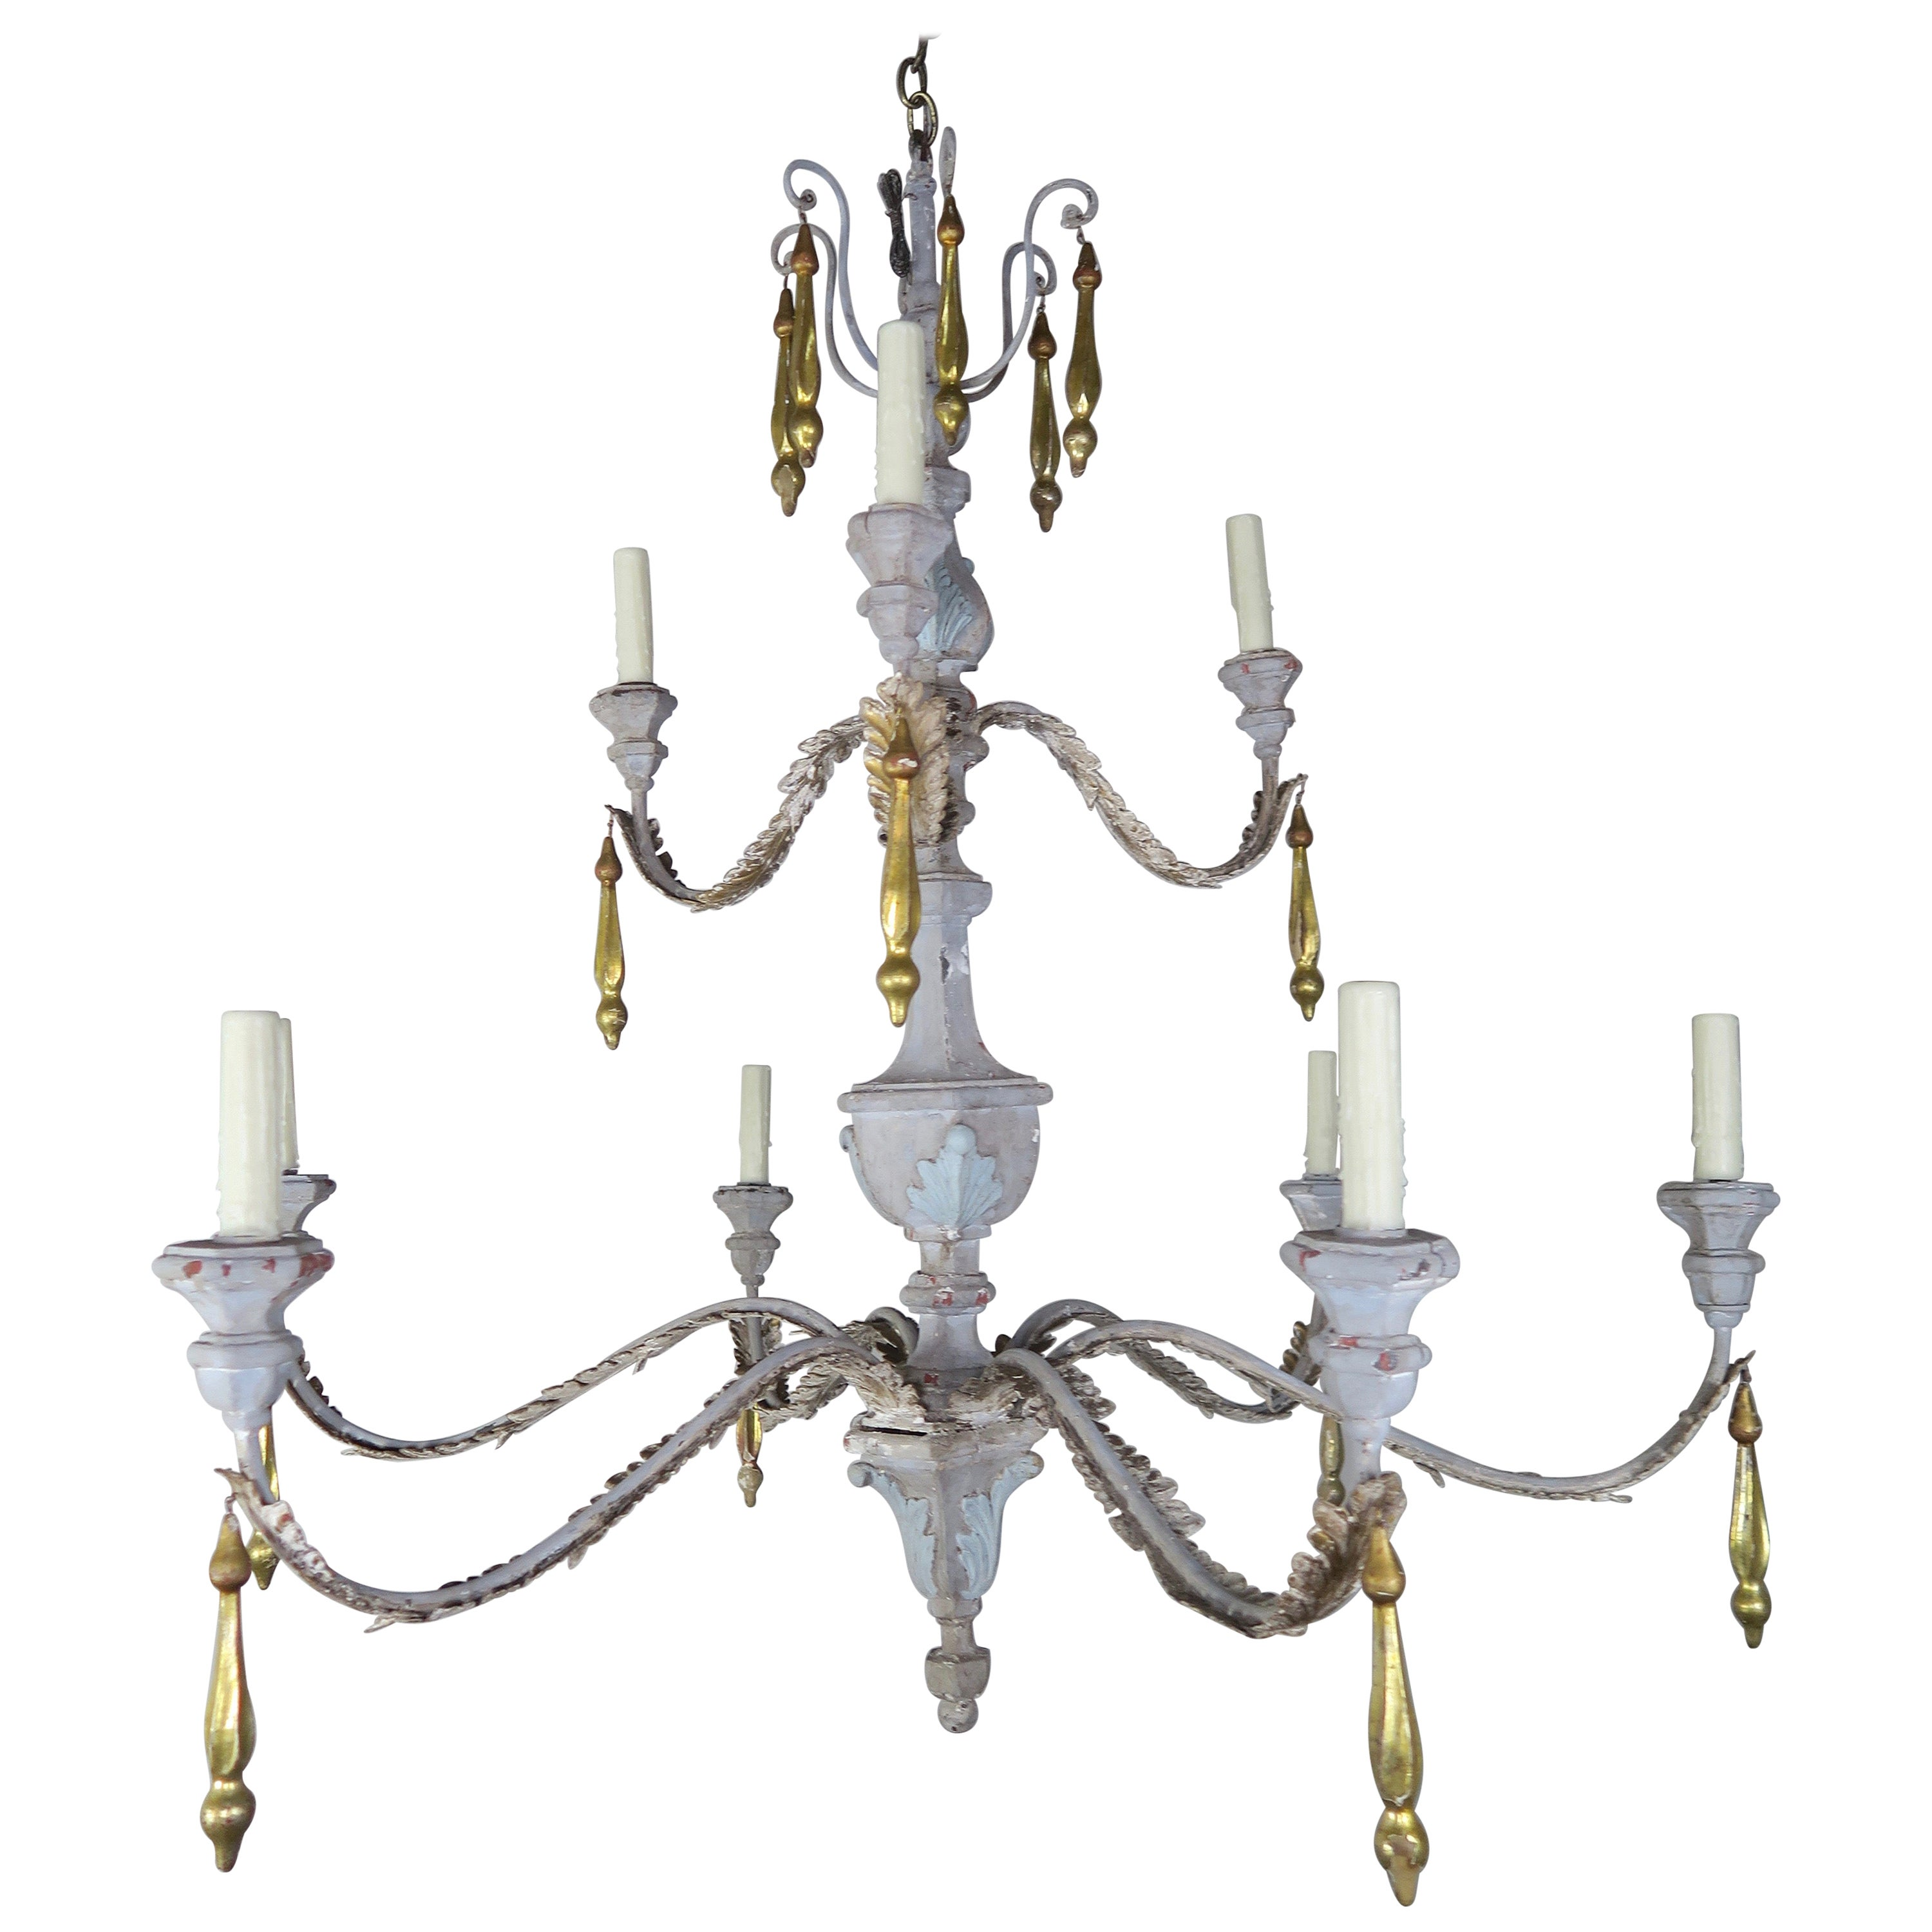 '10' Light Italian Painted and Parcel Gilt Two-Tier Chandelier with Tassels